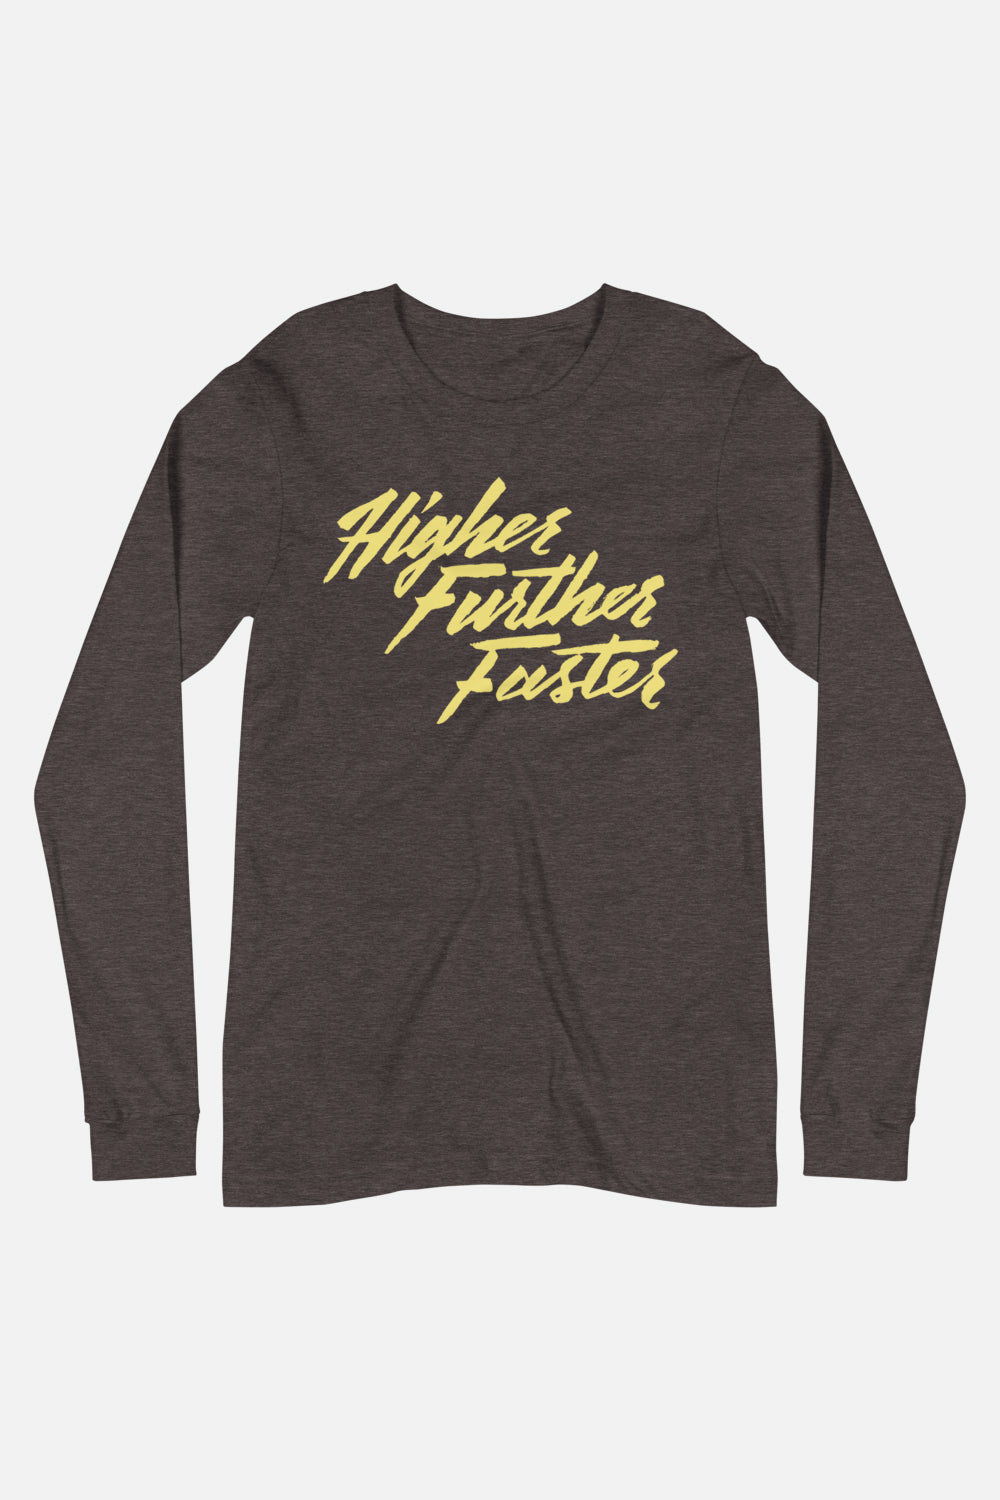 Higher Further Faster Unisex Long Sleeve Tee